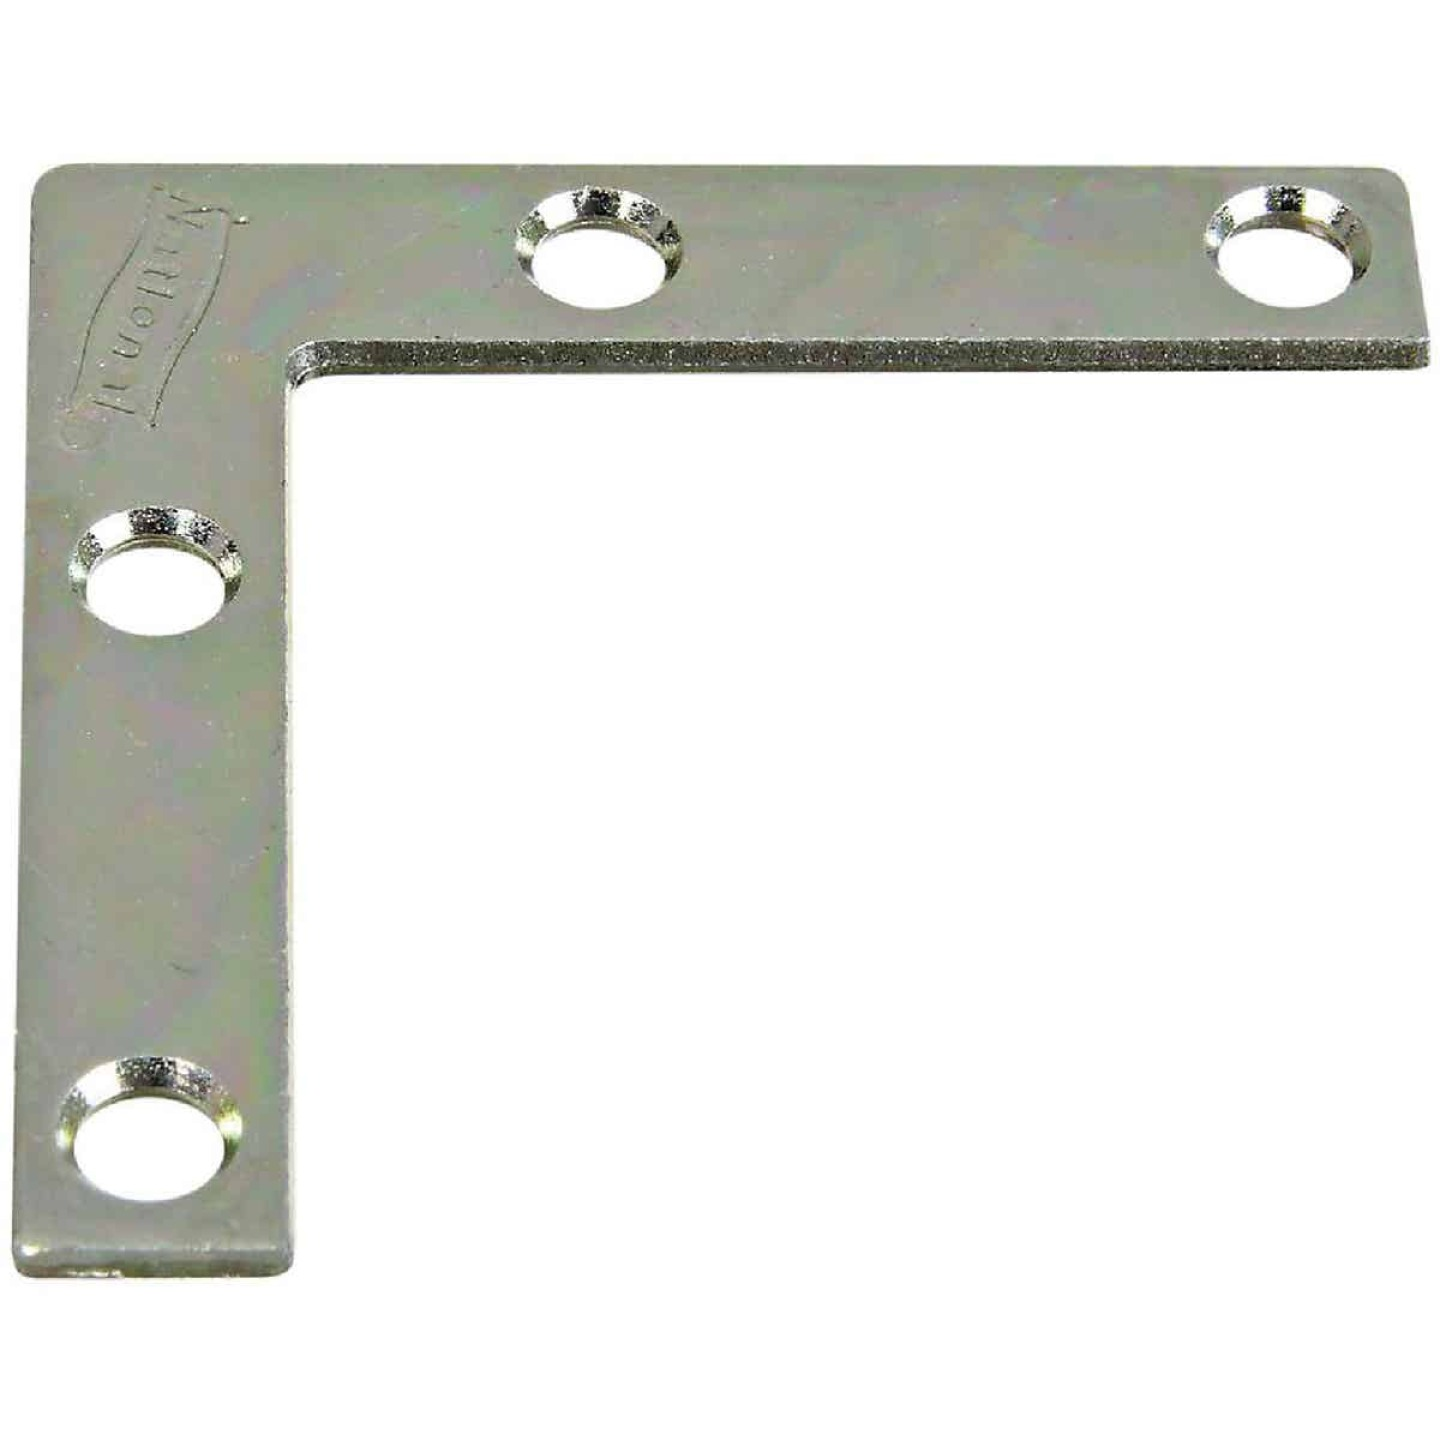 National Catalog 117 2 In. x 3/8 In. Zinc Flat Corner Iron Image 1